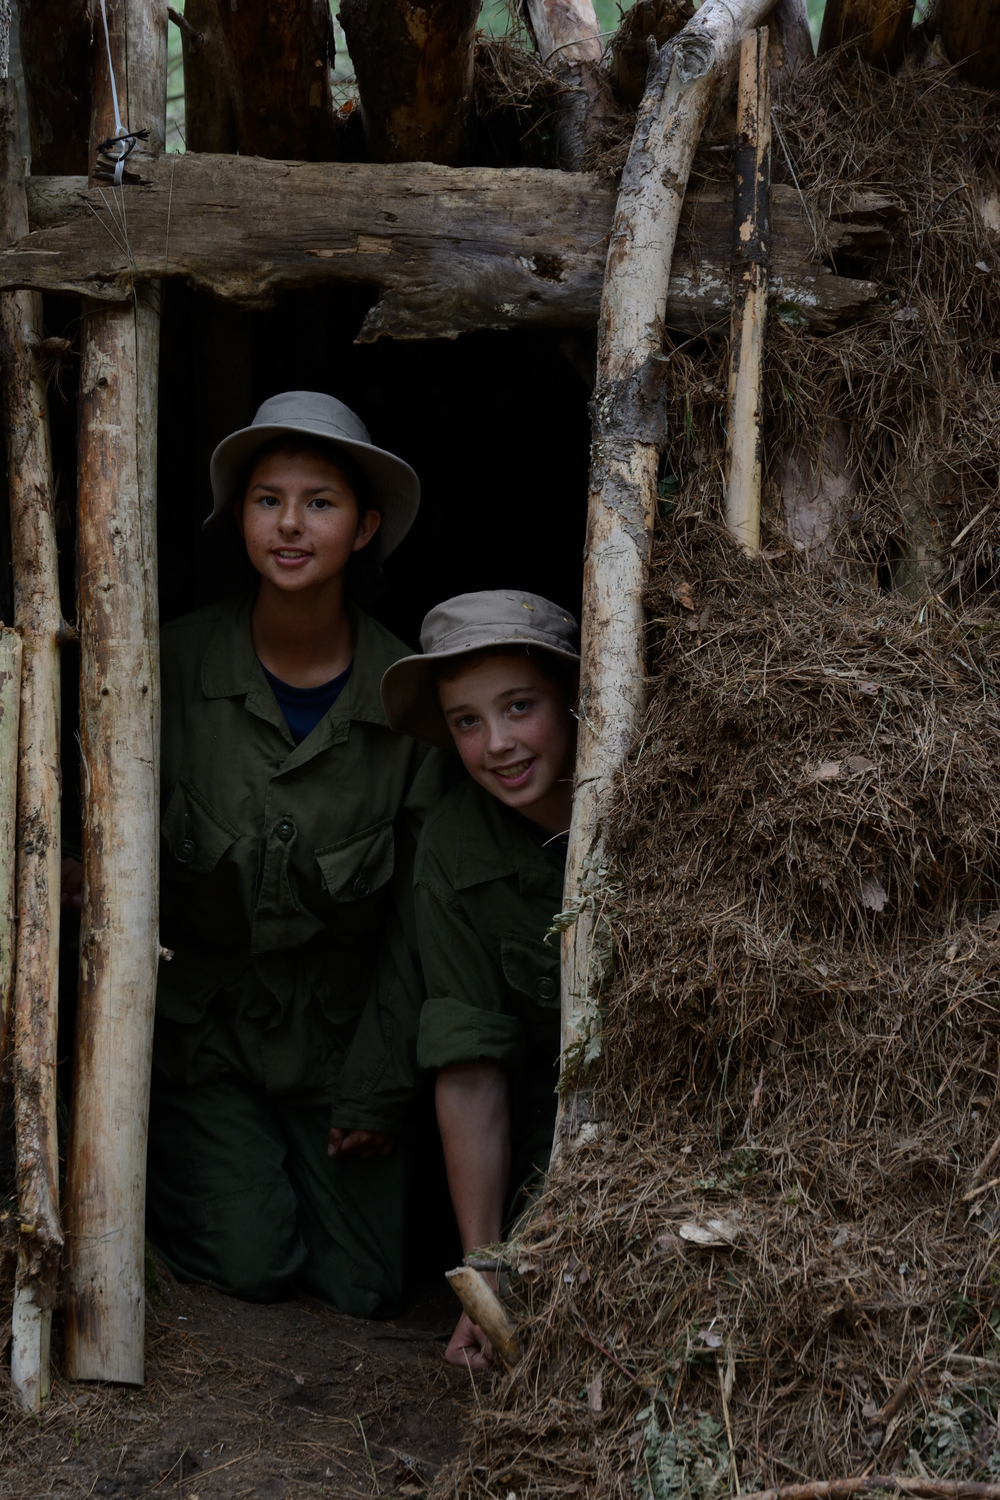 Jacob Partello and Harmony Buswa demonstrate just how roomy a wilderness shelter made of logs and pine-needs can be. Air Cadets in the basic Survival Course are trained to choose campsites, start and maintain fires and build shelters, before going on a wilderness trek to prove their survival capabilities. (Sgt Kev Parle, DND)